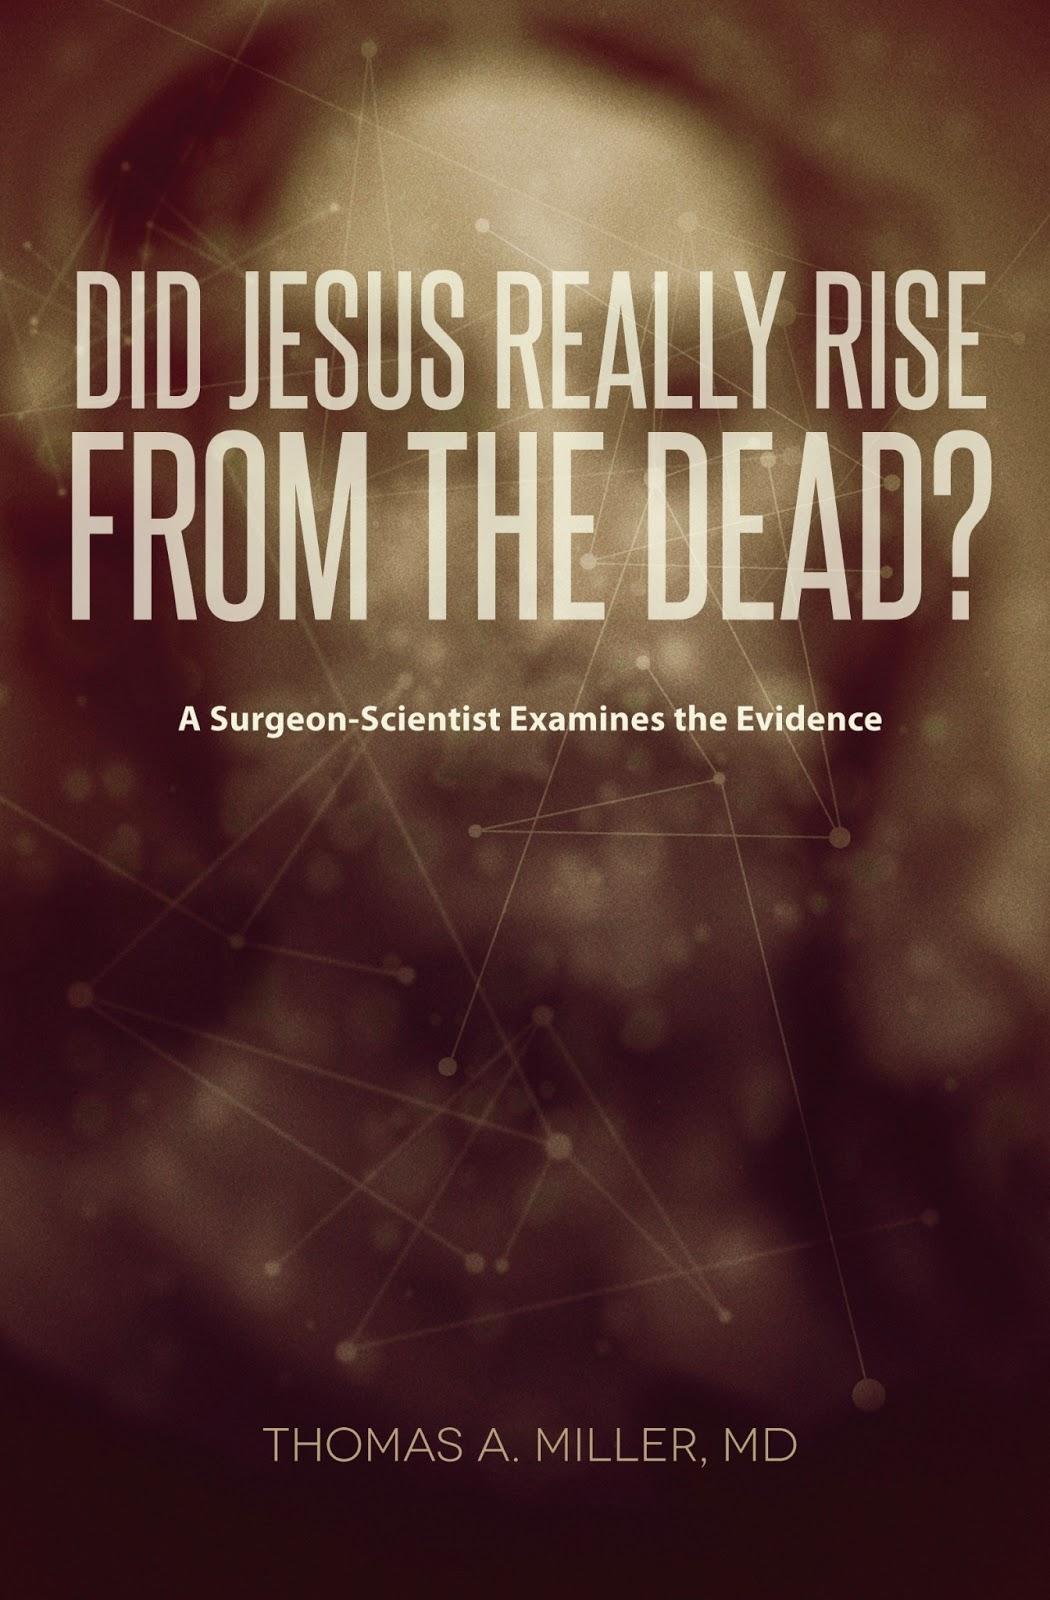 Did Jesus Really Rise from the Dead? A Surgeon-Scientist Examines the Evidence book cover